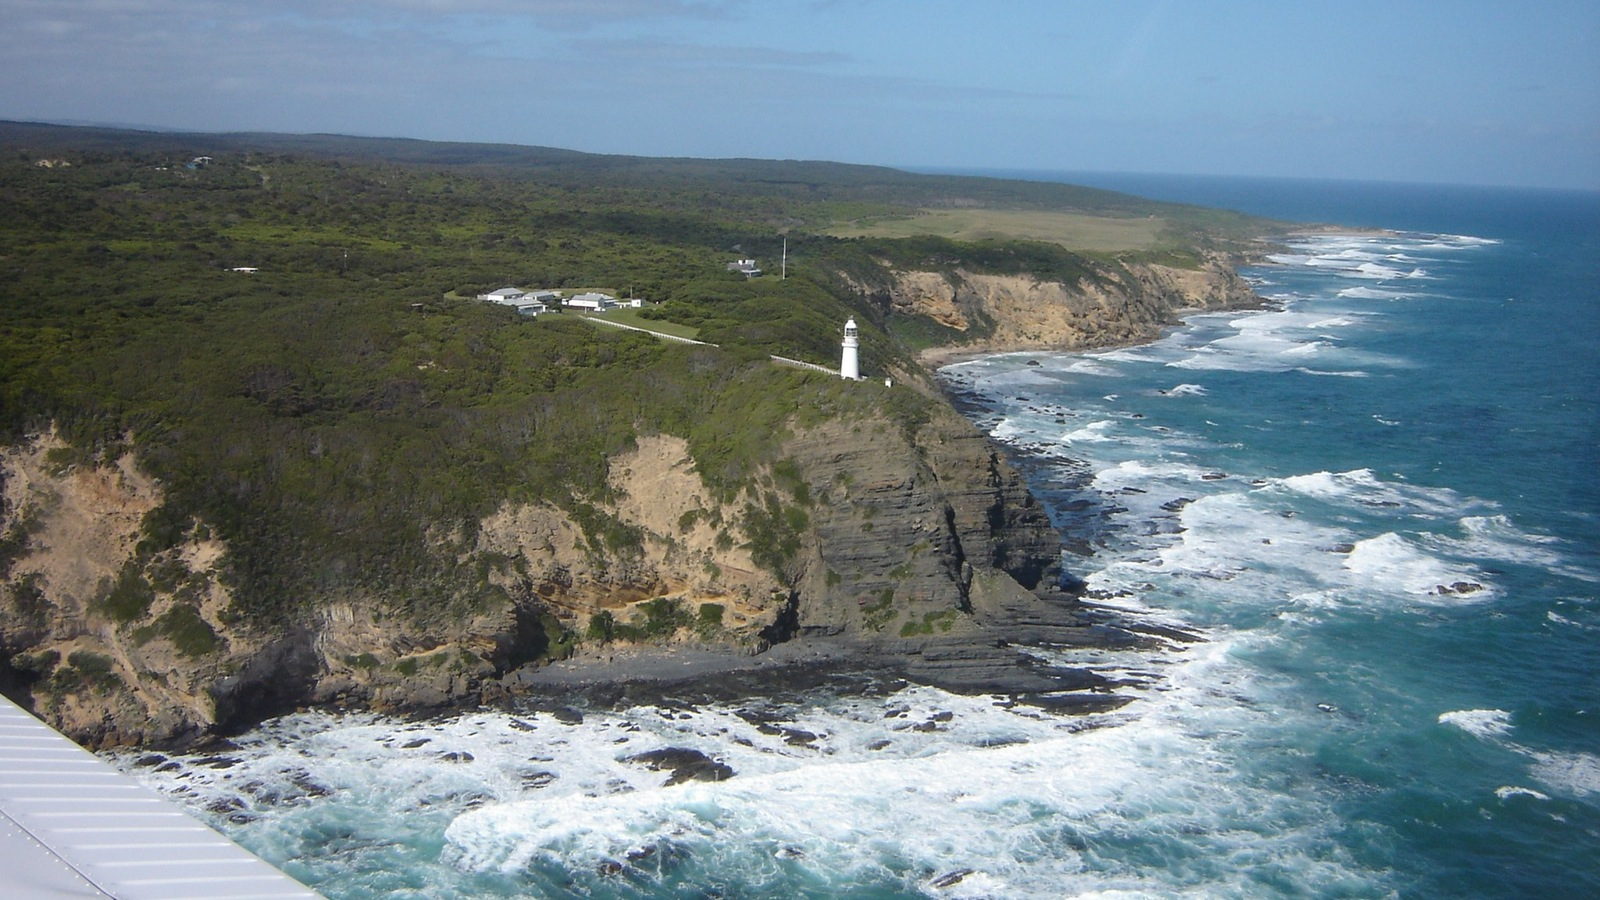 Cape Otway Lighthouse as seen with 12 Apostles flight adventures, Torquay